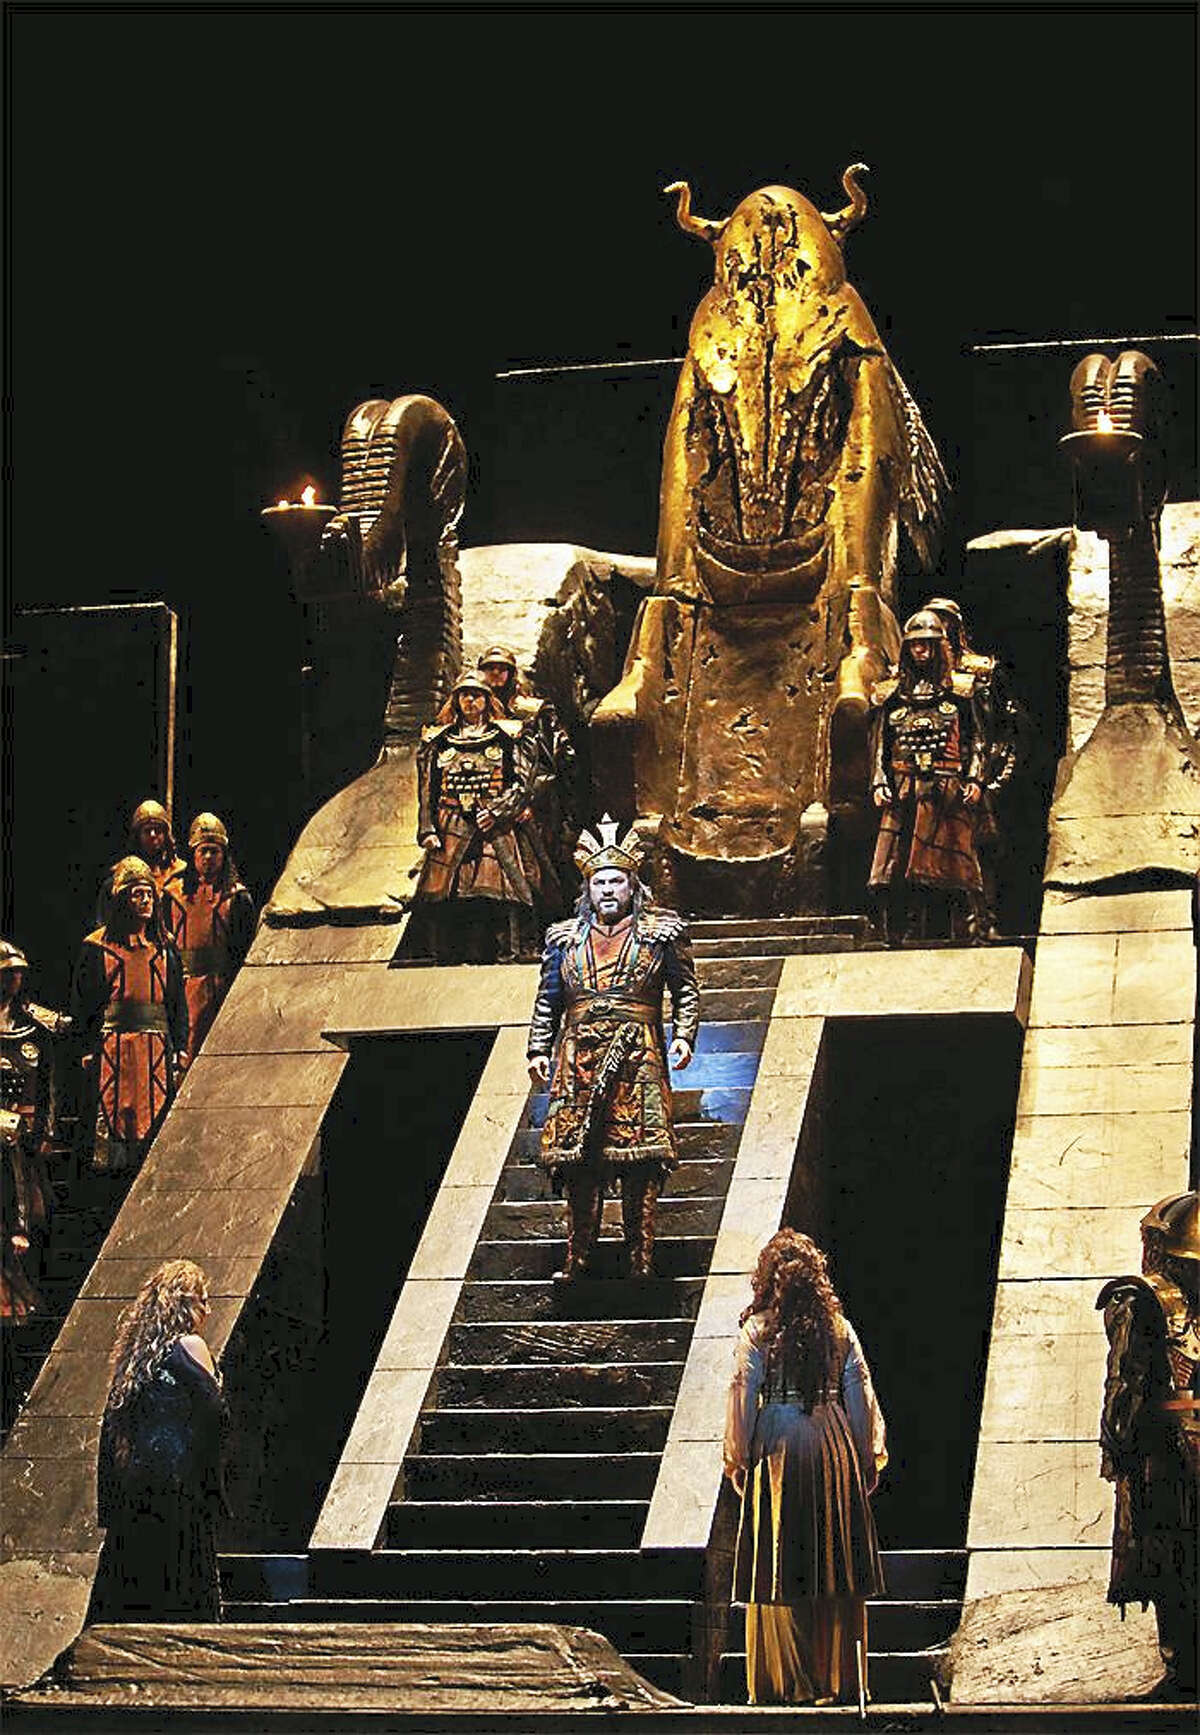 A scene from the opera Nabucco at the Met, which will be broadcast live in HD on Jan. 7 at the Warner Theatre.